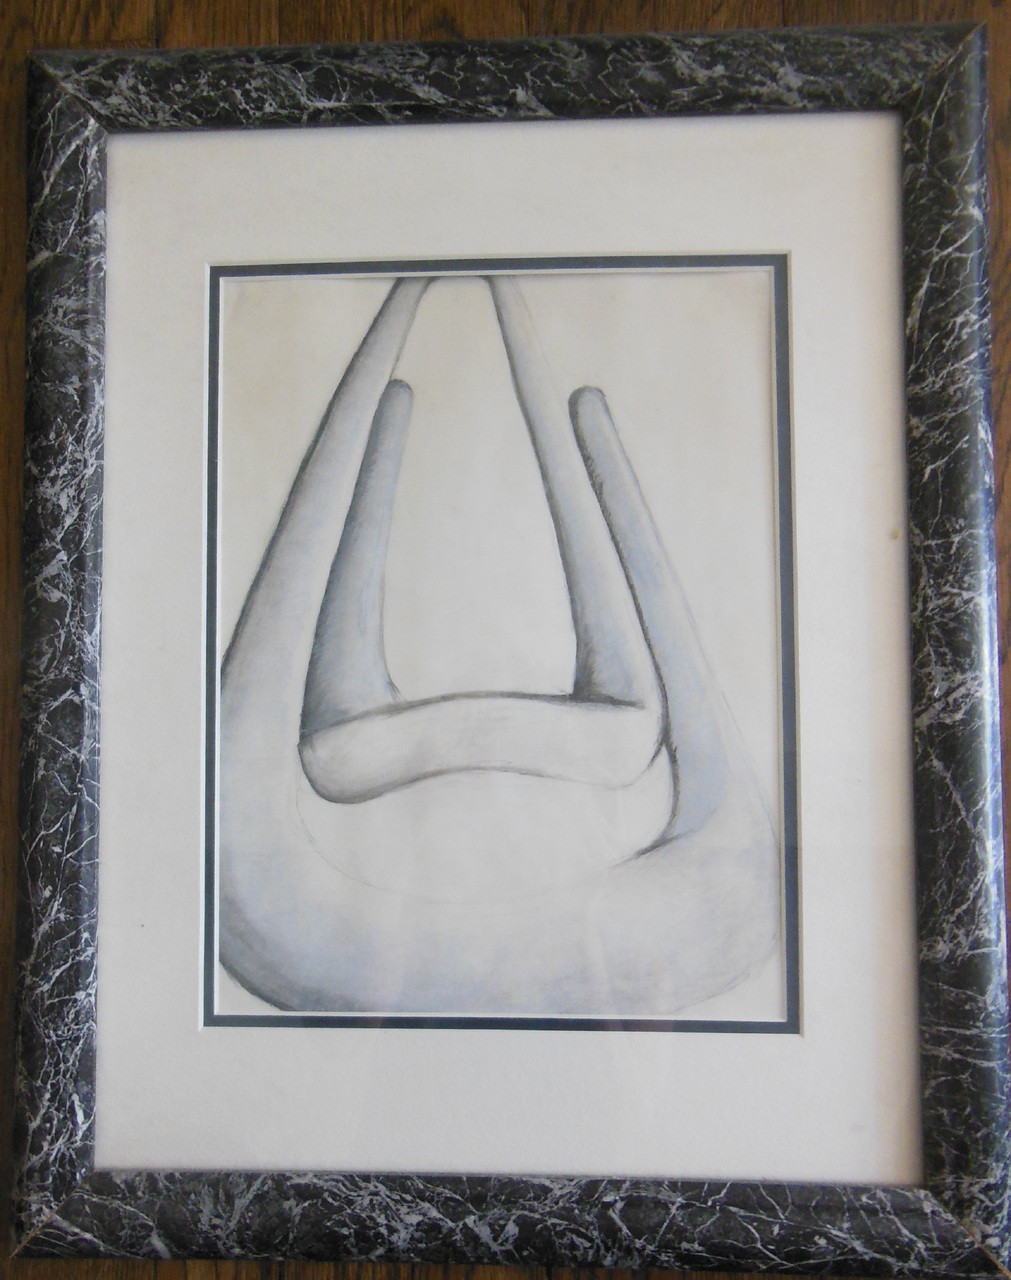 Paperclip- Pencil on Paper - Framed